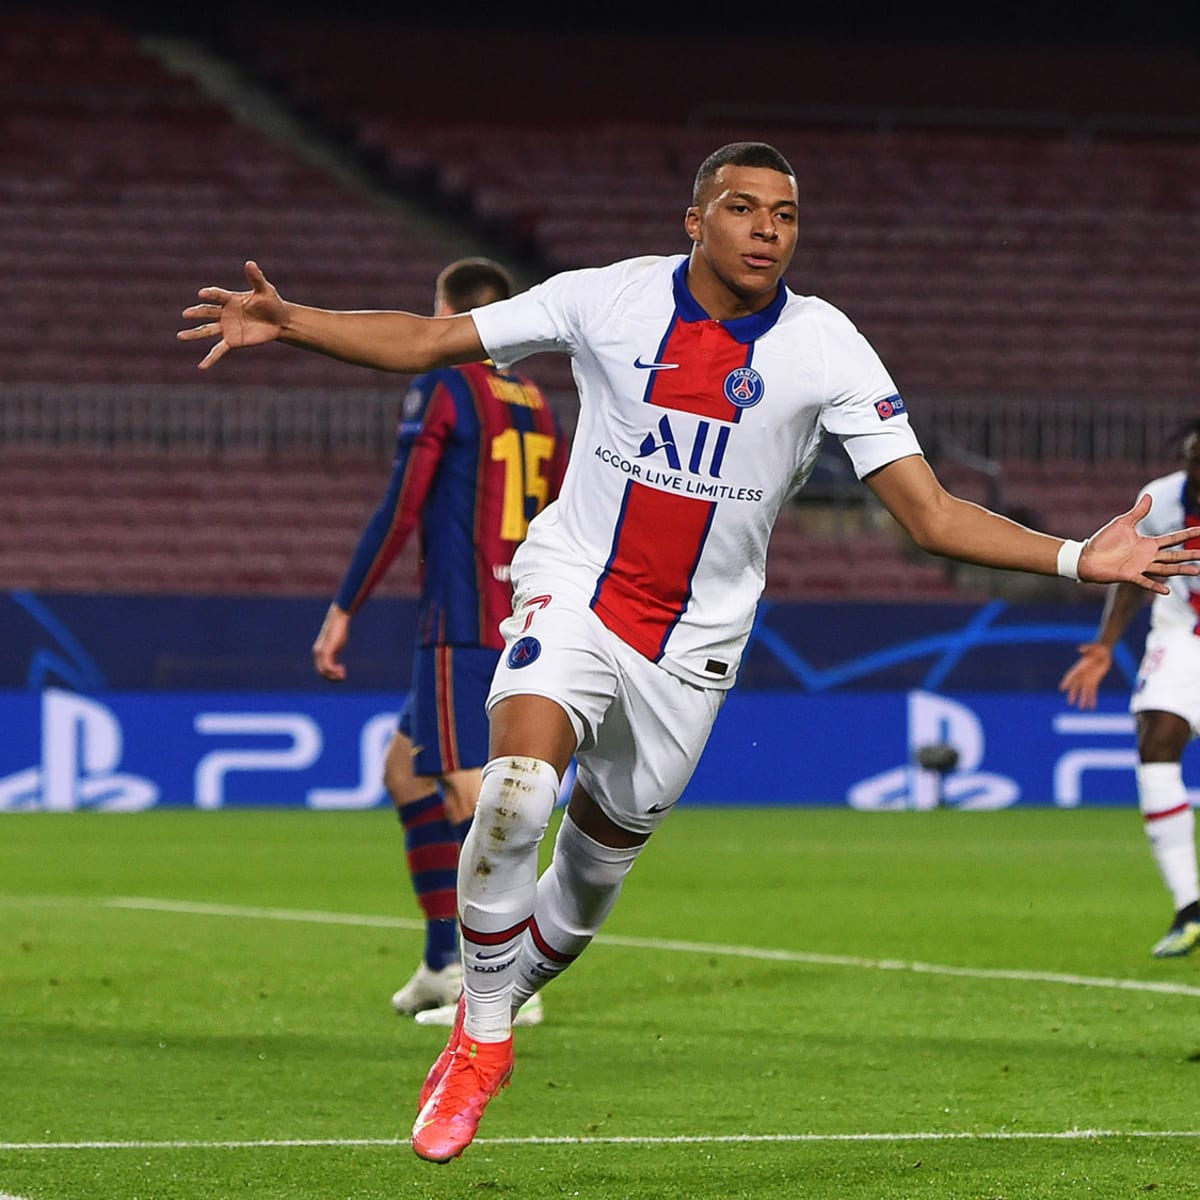 Kylian Mbappe Psg Put Messi Barcelona On Brink Of Ucl Exit Sports Illustrated